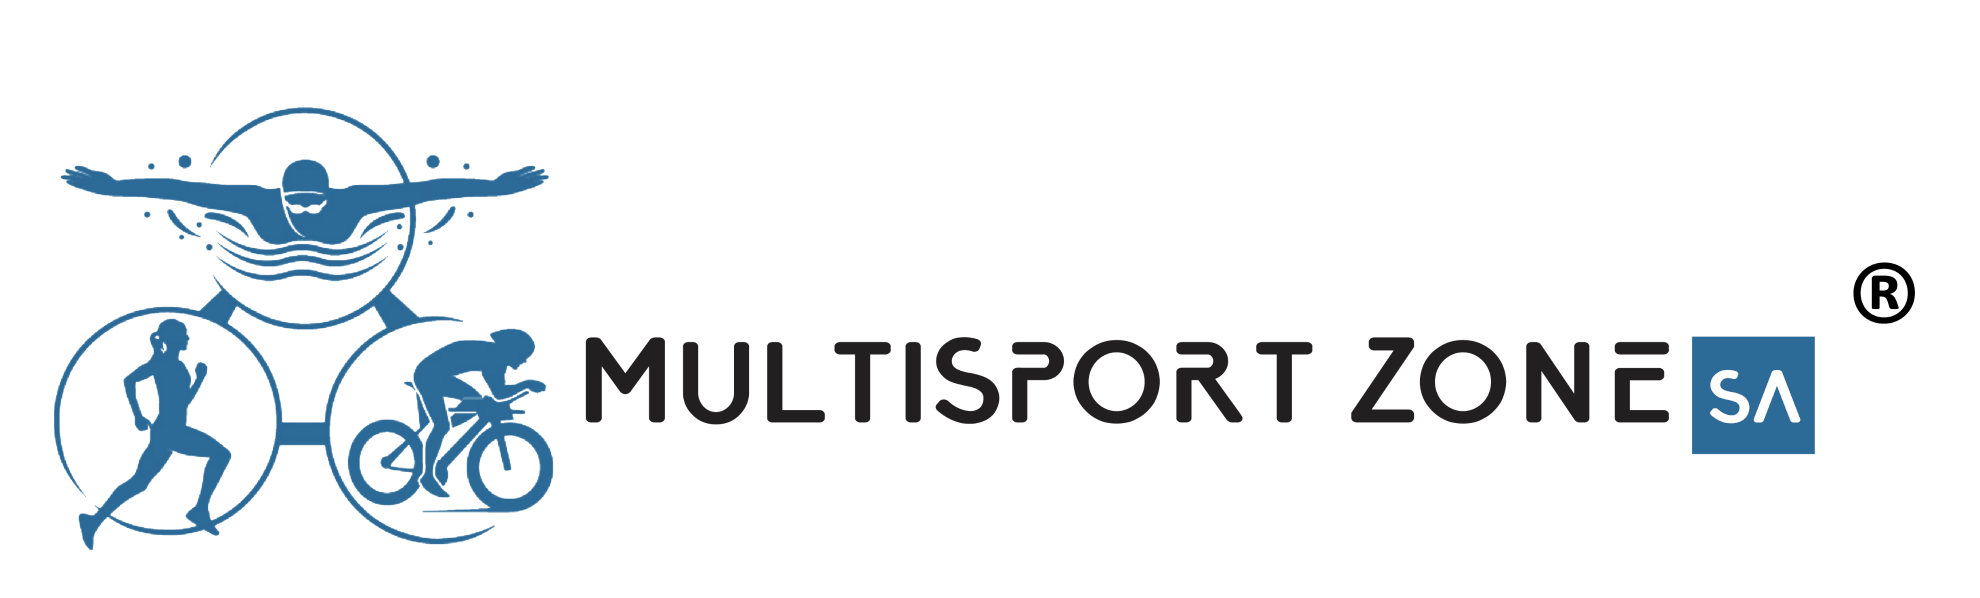 Multisport Zone SA - Taking #2020 by storm